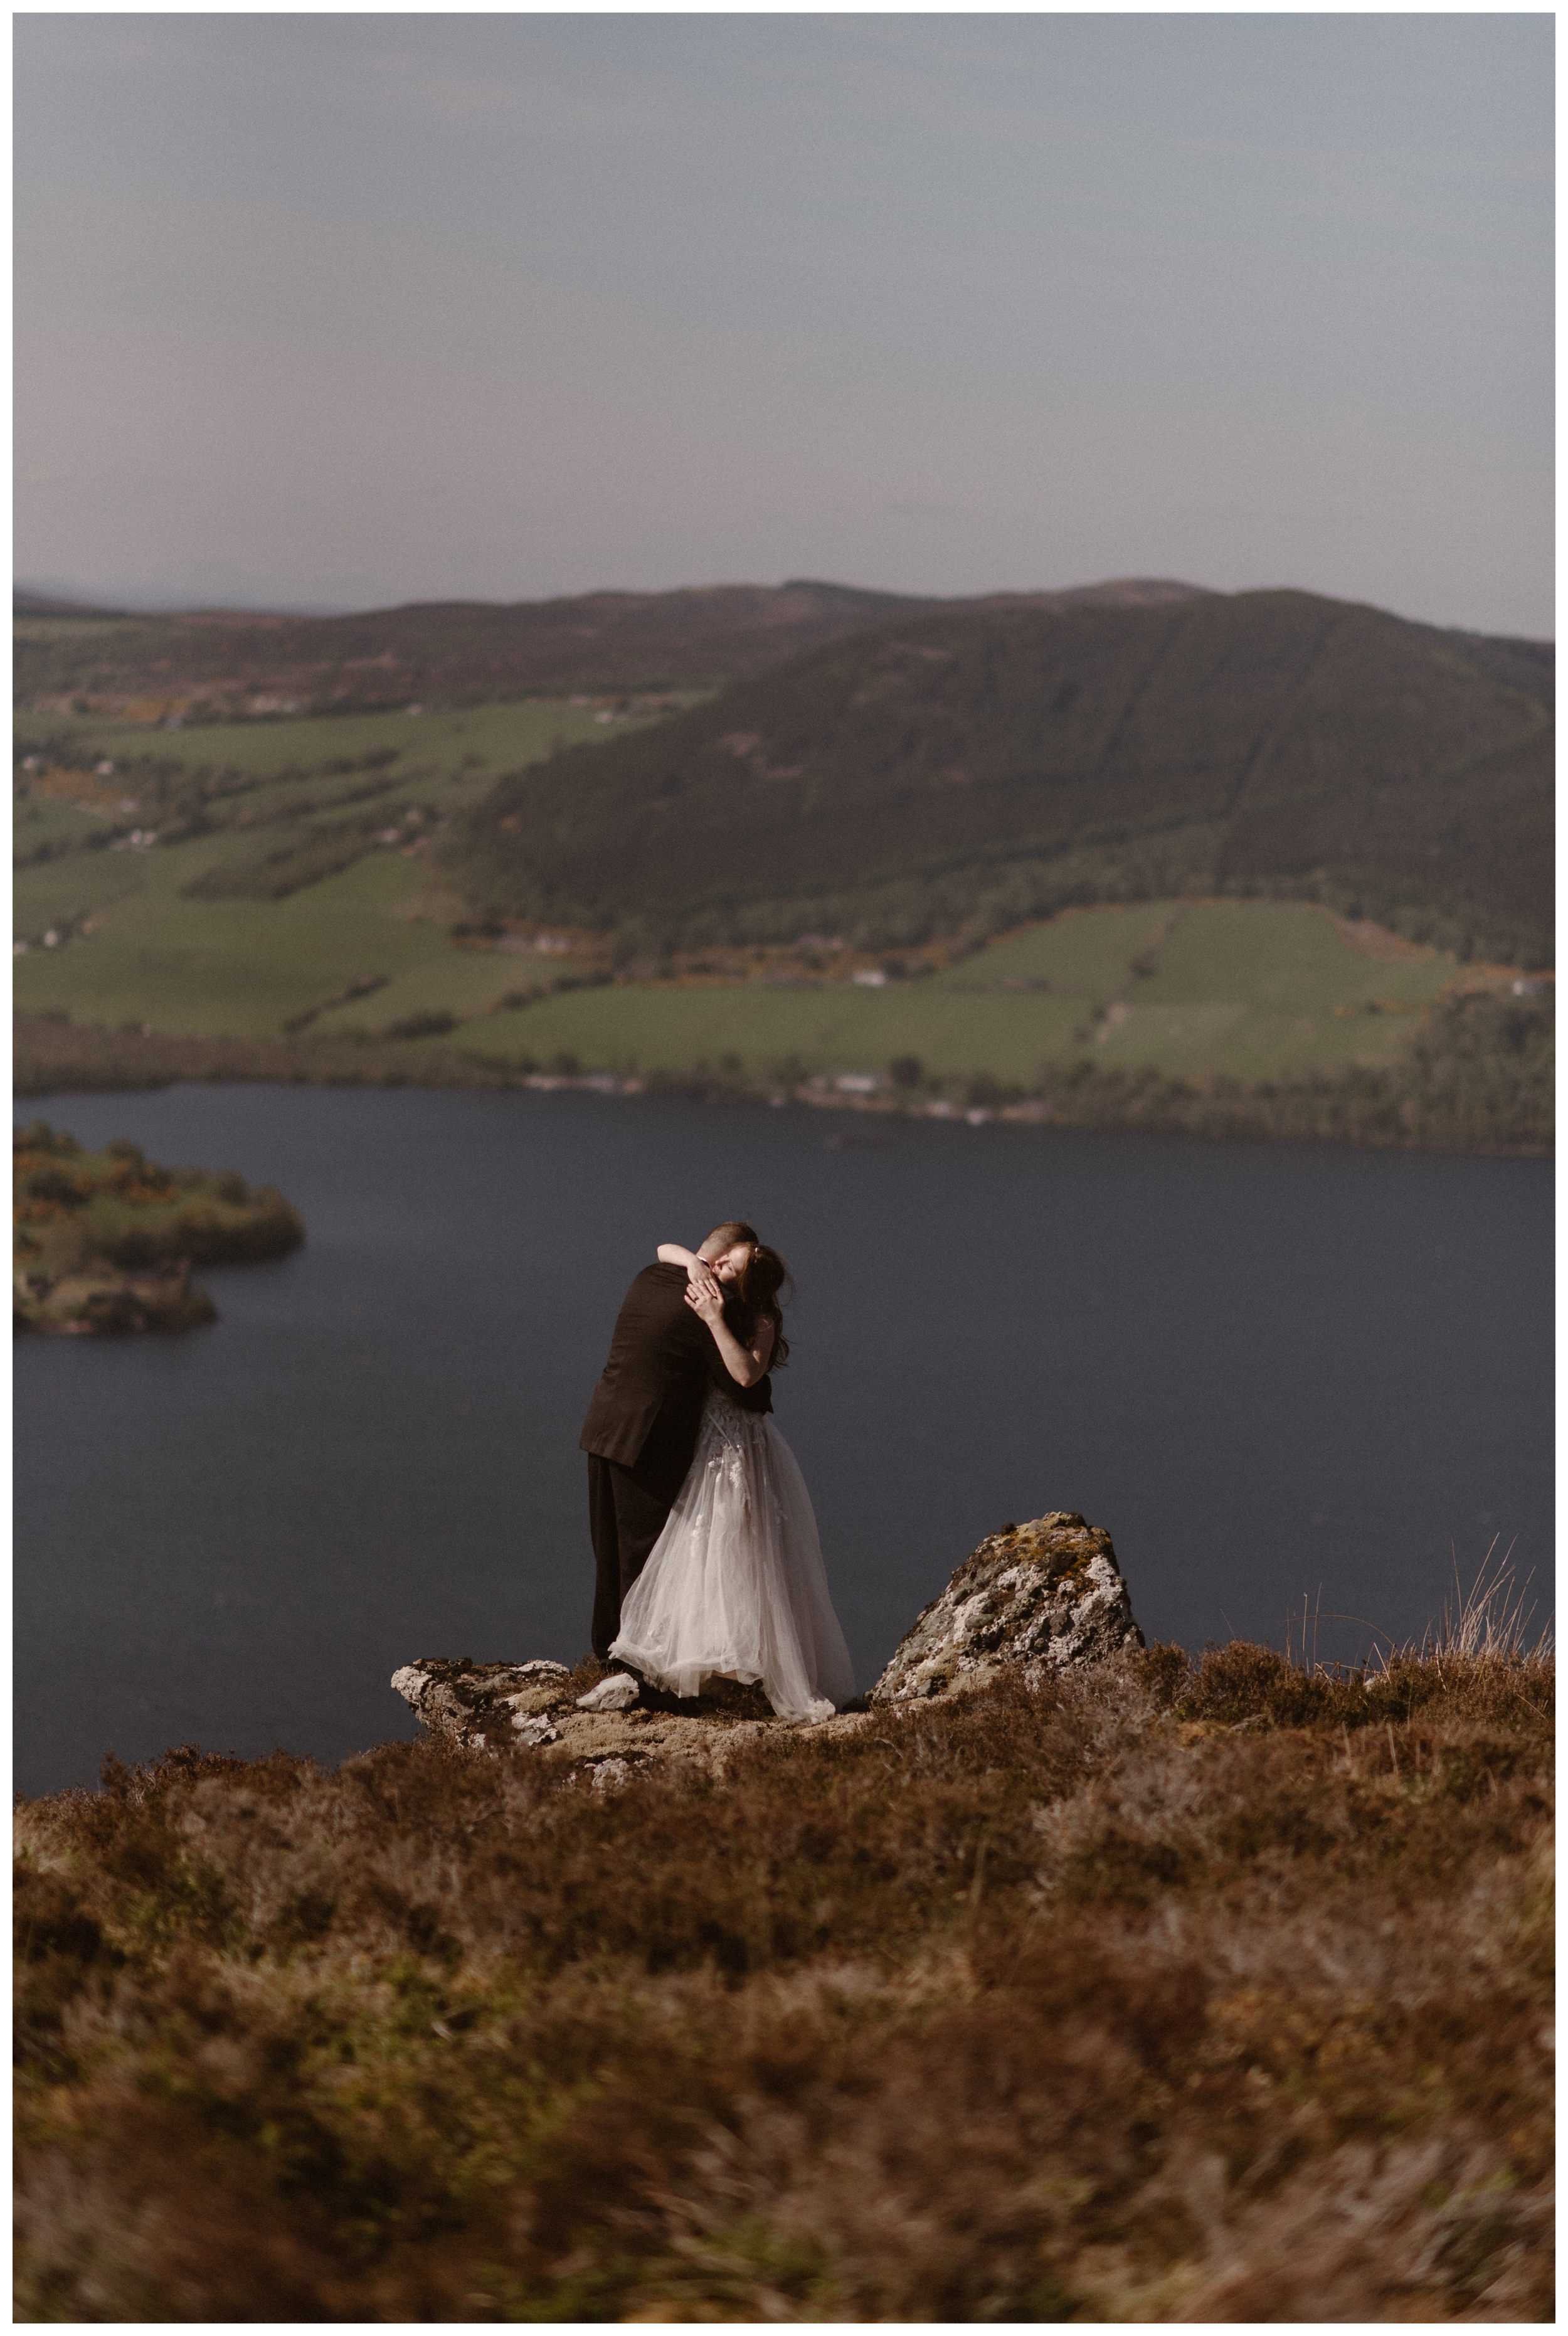 We explored the shores of Loch Ness in Scotland and could see the ruins of Urquhart Castle, a 16th century fortress in the Scottish Highlands following Elissa and Daniel's destination wedding elopement. Photo by Maddie Mae, Adventure Instead.